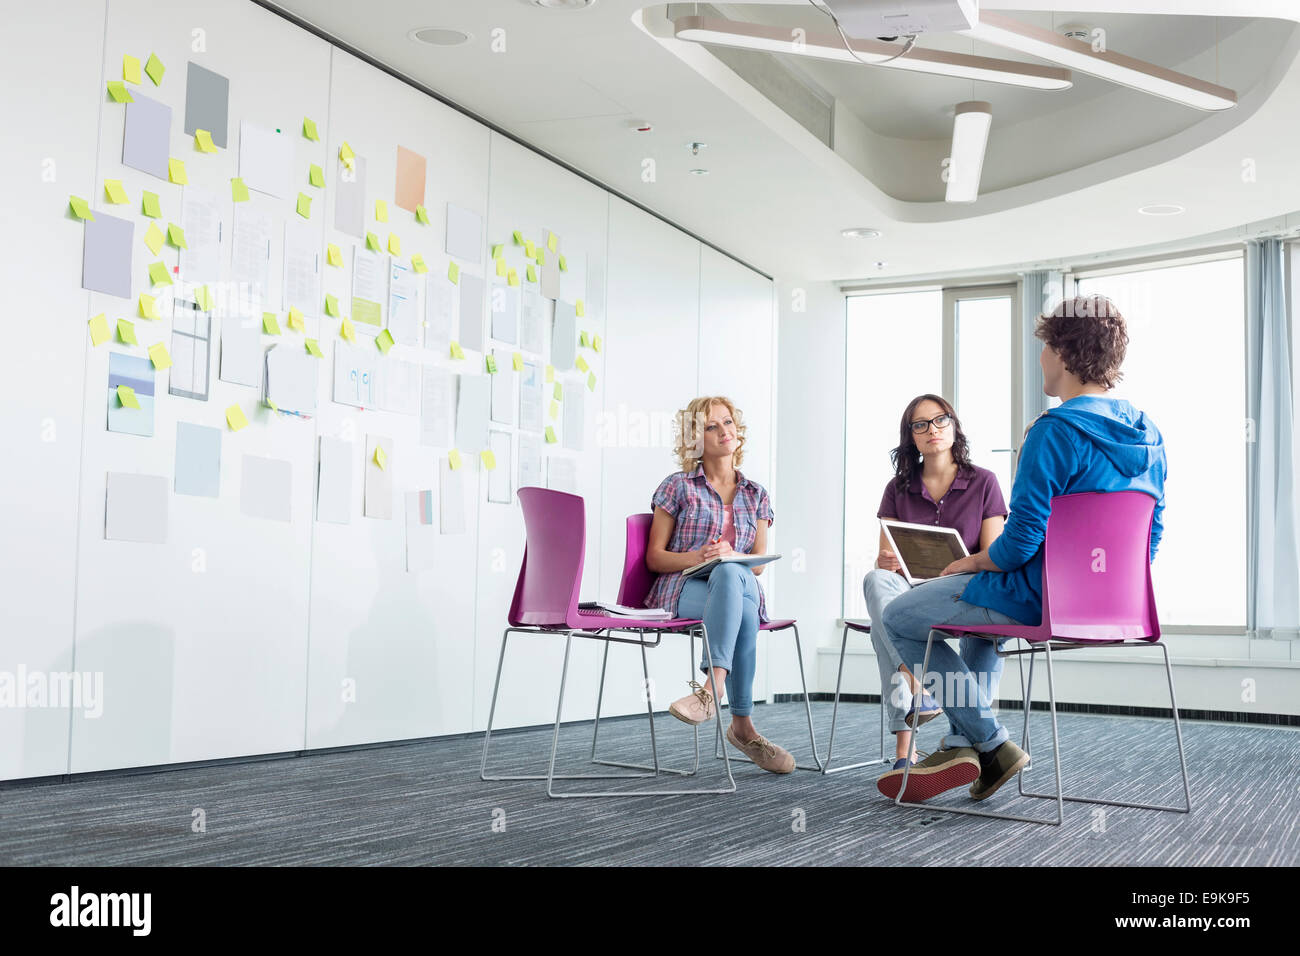 Businesspeople discussing in creative office space - Stock Image